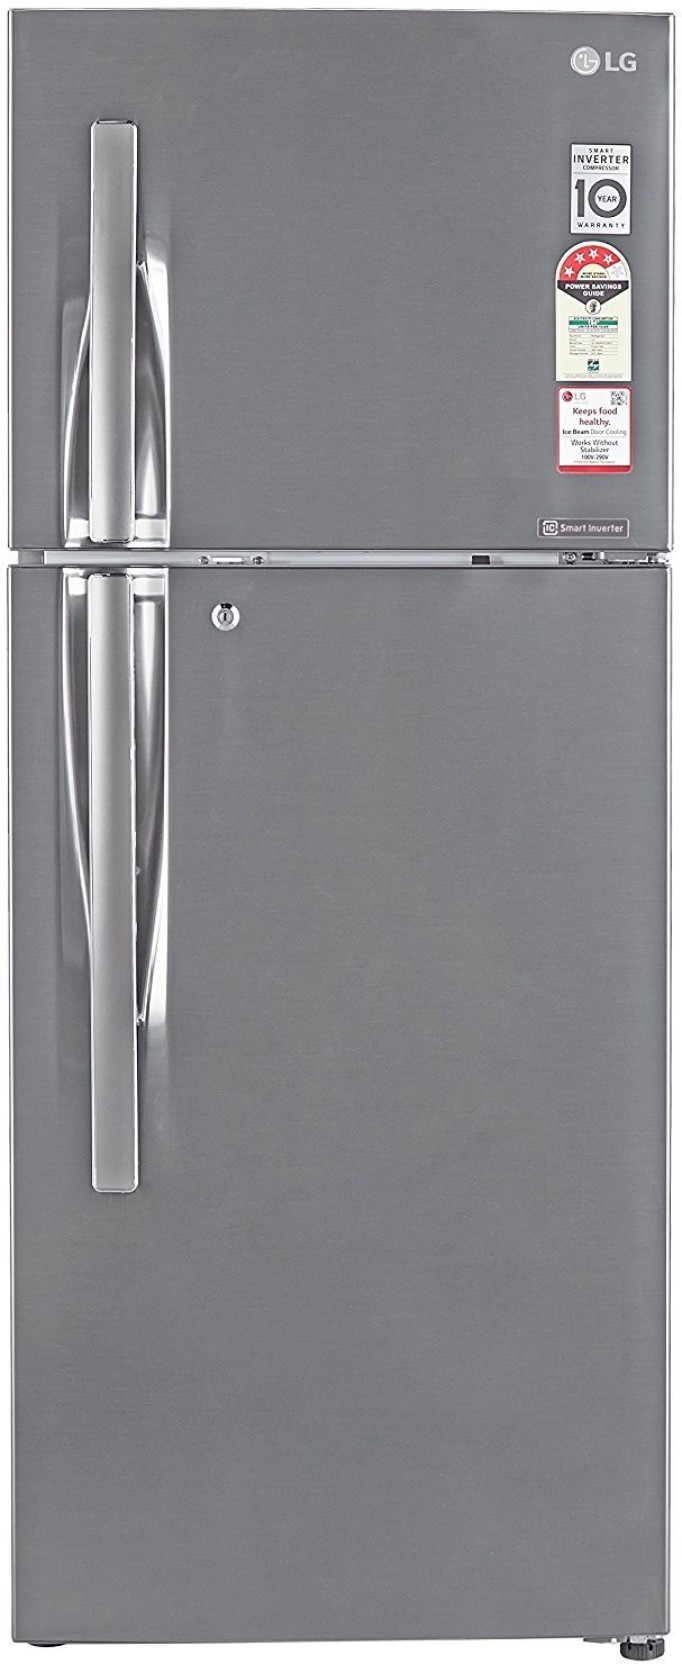 Lg 260 L Frost Free Double Door 4 Star Refrigerator Online At Best Alarm Circuit On Offer